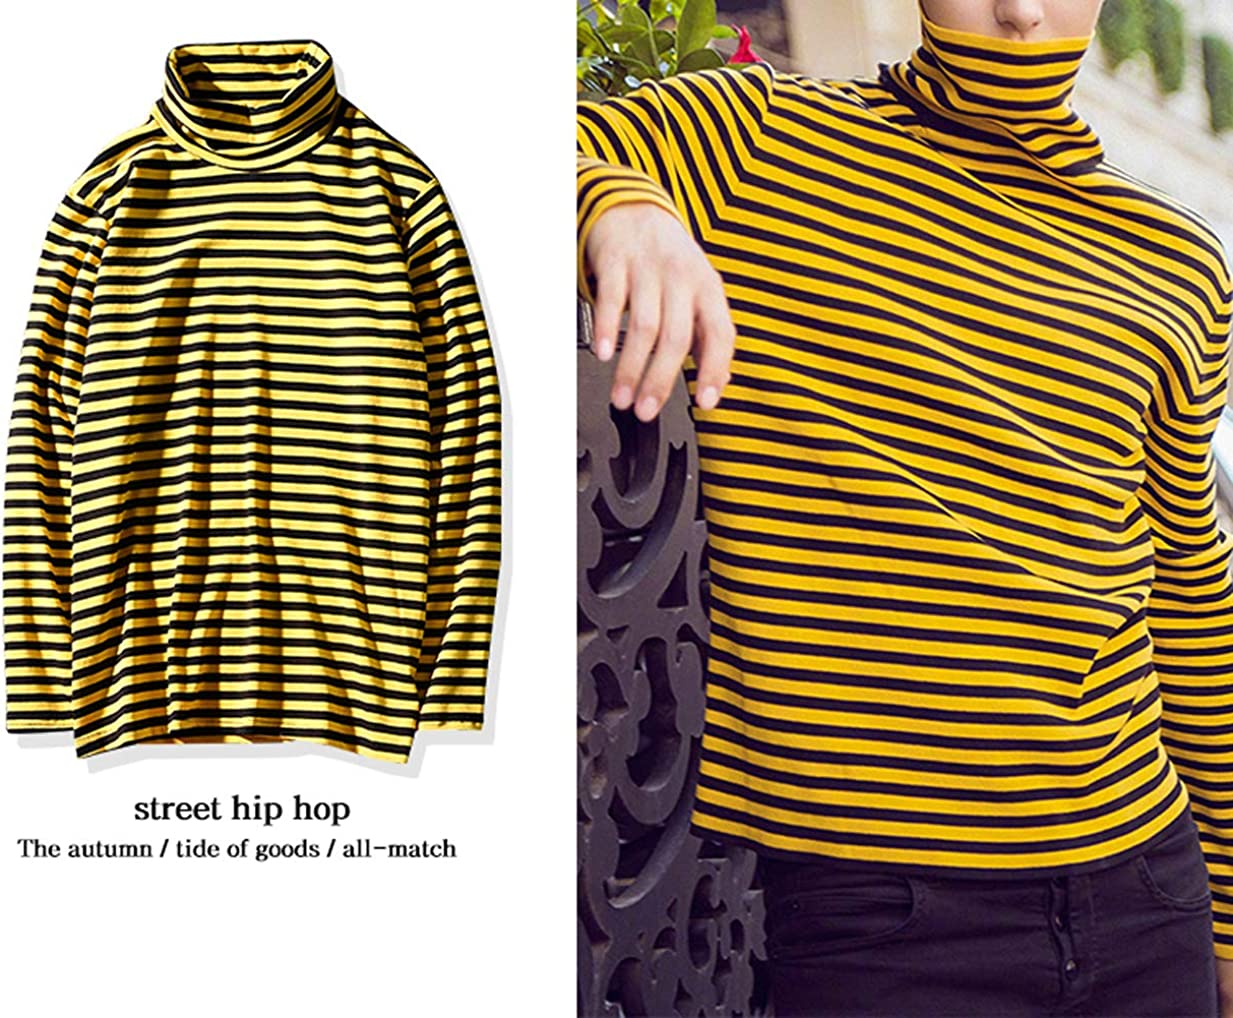 Hotmiss Mens Turtleneck Striped Hipster Hip Hop Pullover Long Sleeve T-Shirt Top Red